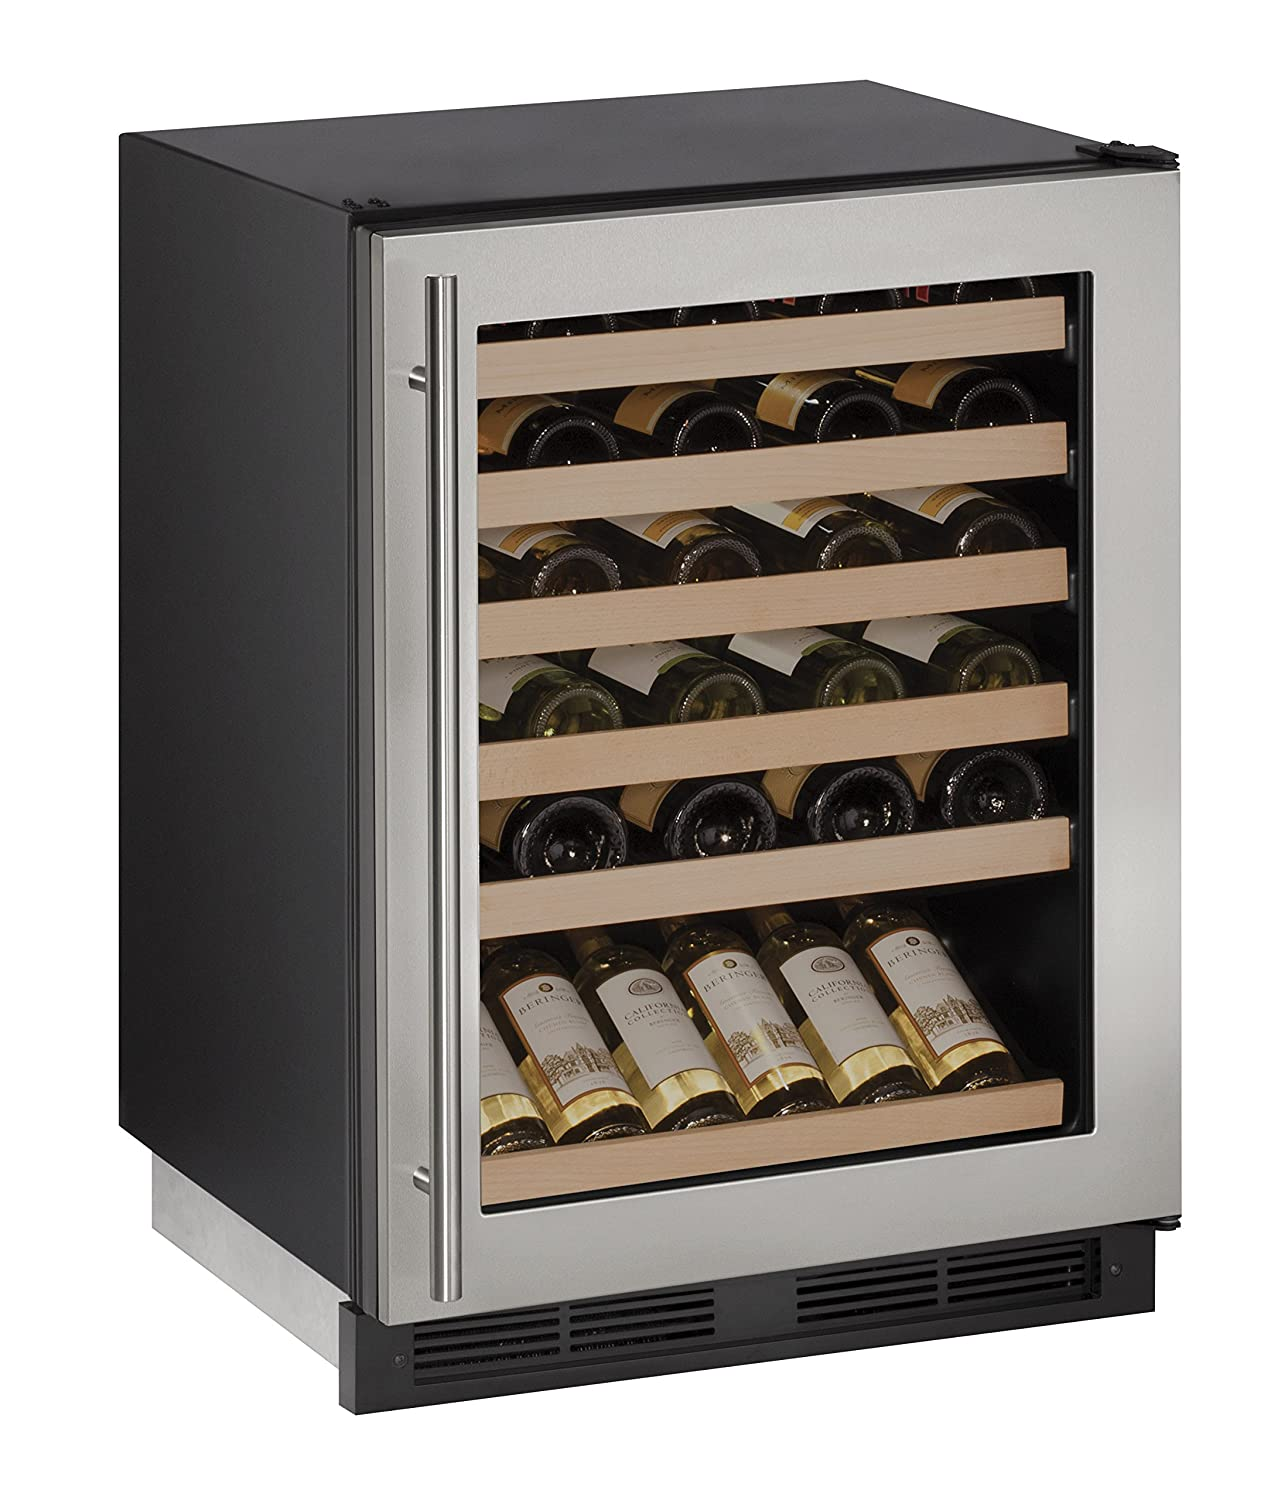 wkr cooling cooler cabinet wine en technology liebherr refrigerated coolers